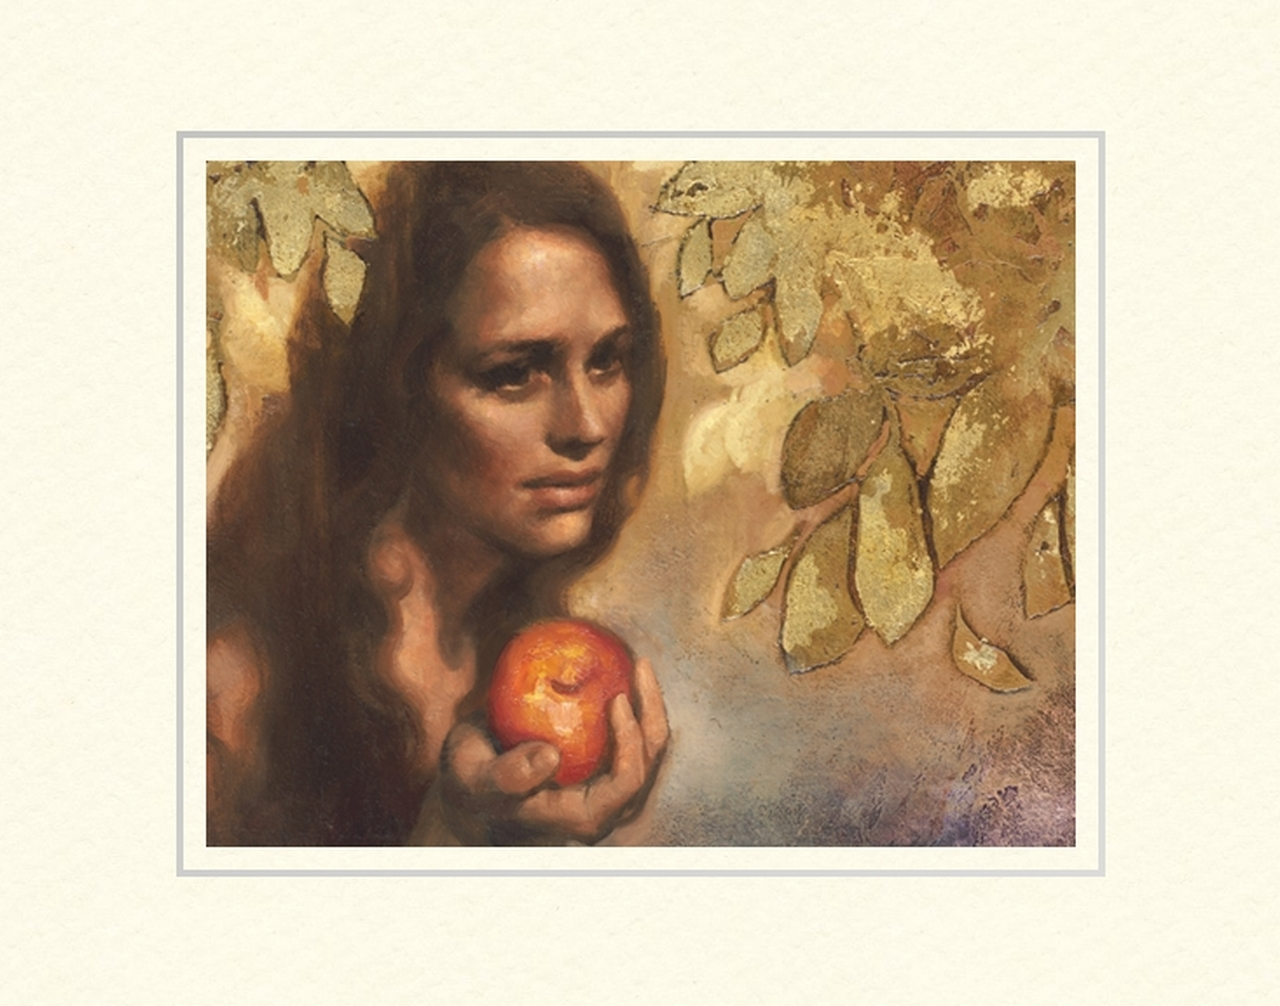 AF -11×14 Print - Leaving Eden / 11x14 matted/Annie Henrie Nader <BR>エデンの園を去る 11×14 マットプリント